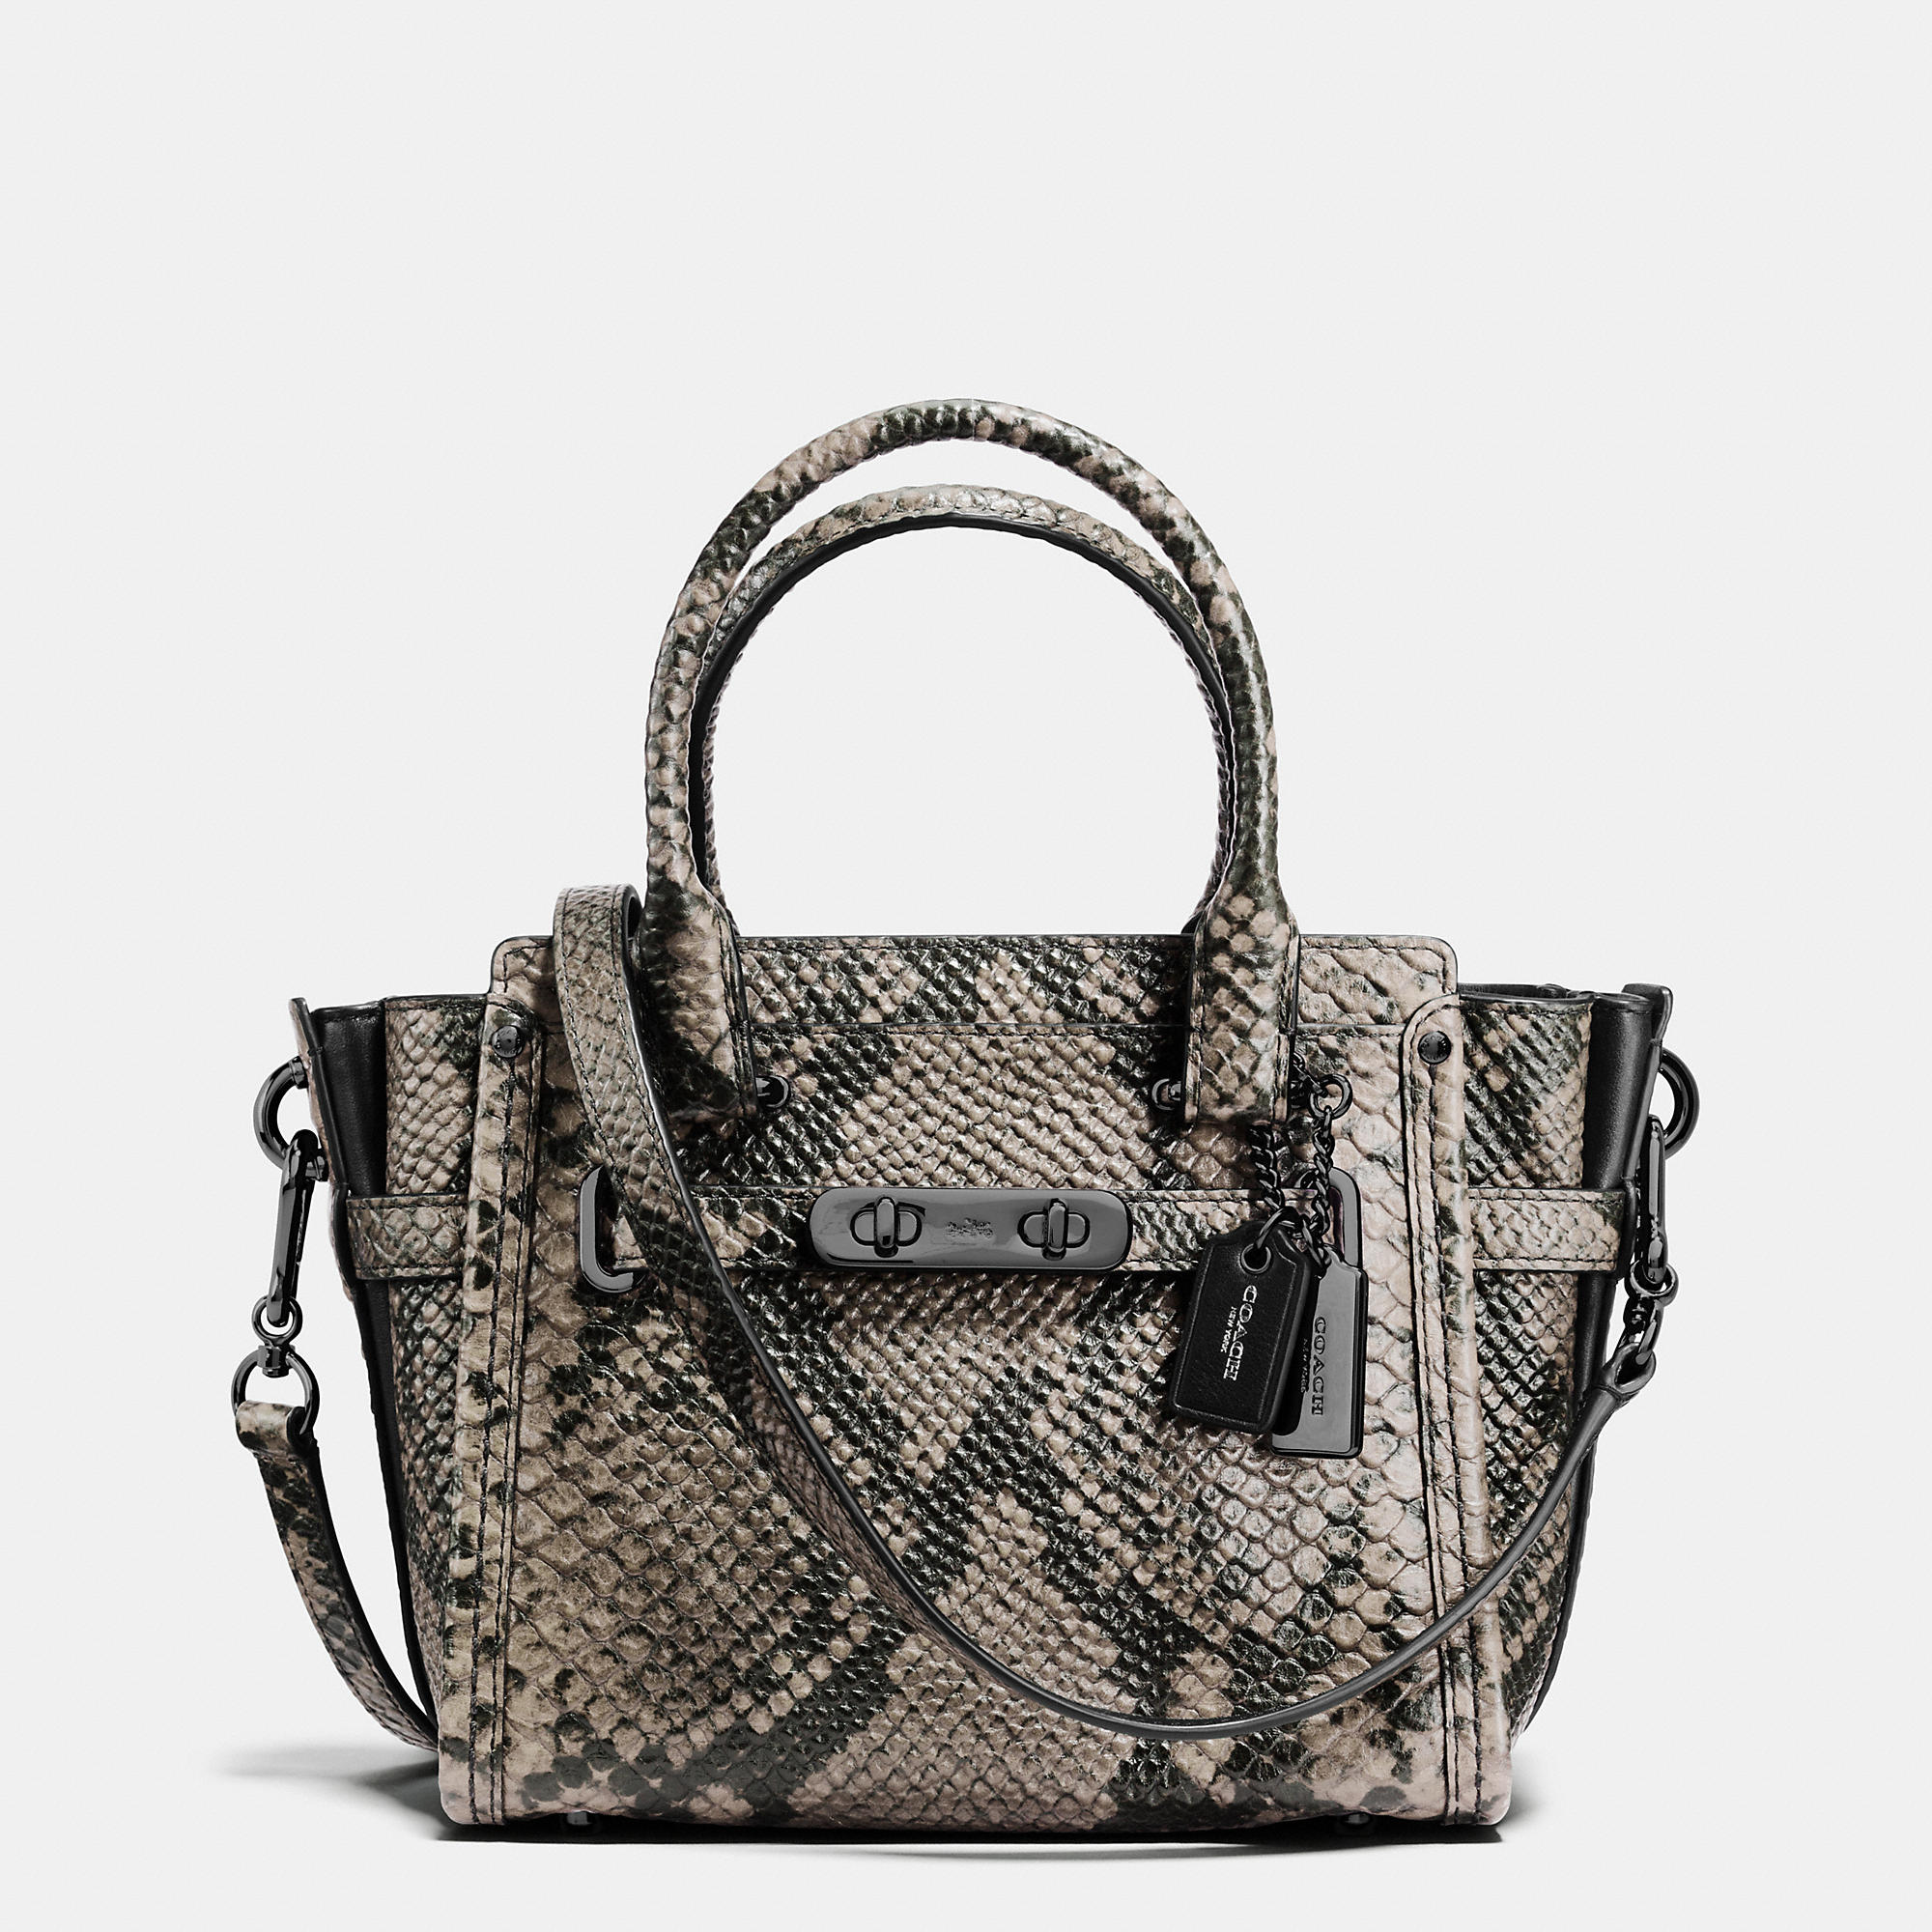 Coach Swagger 21 Carryall In Snake-Embossed Leather